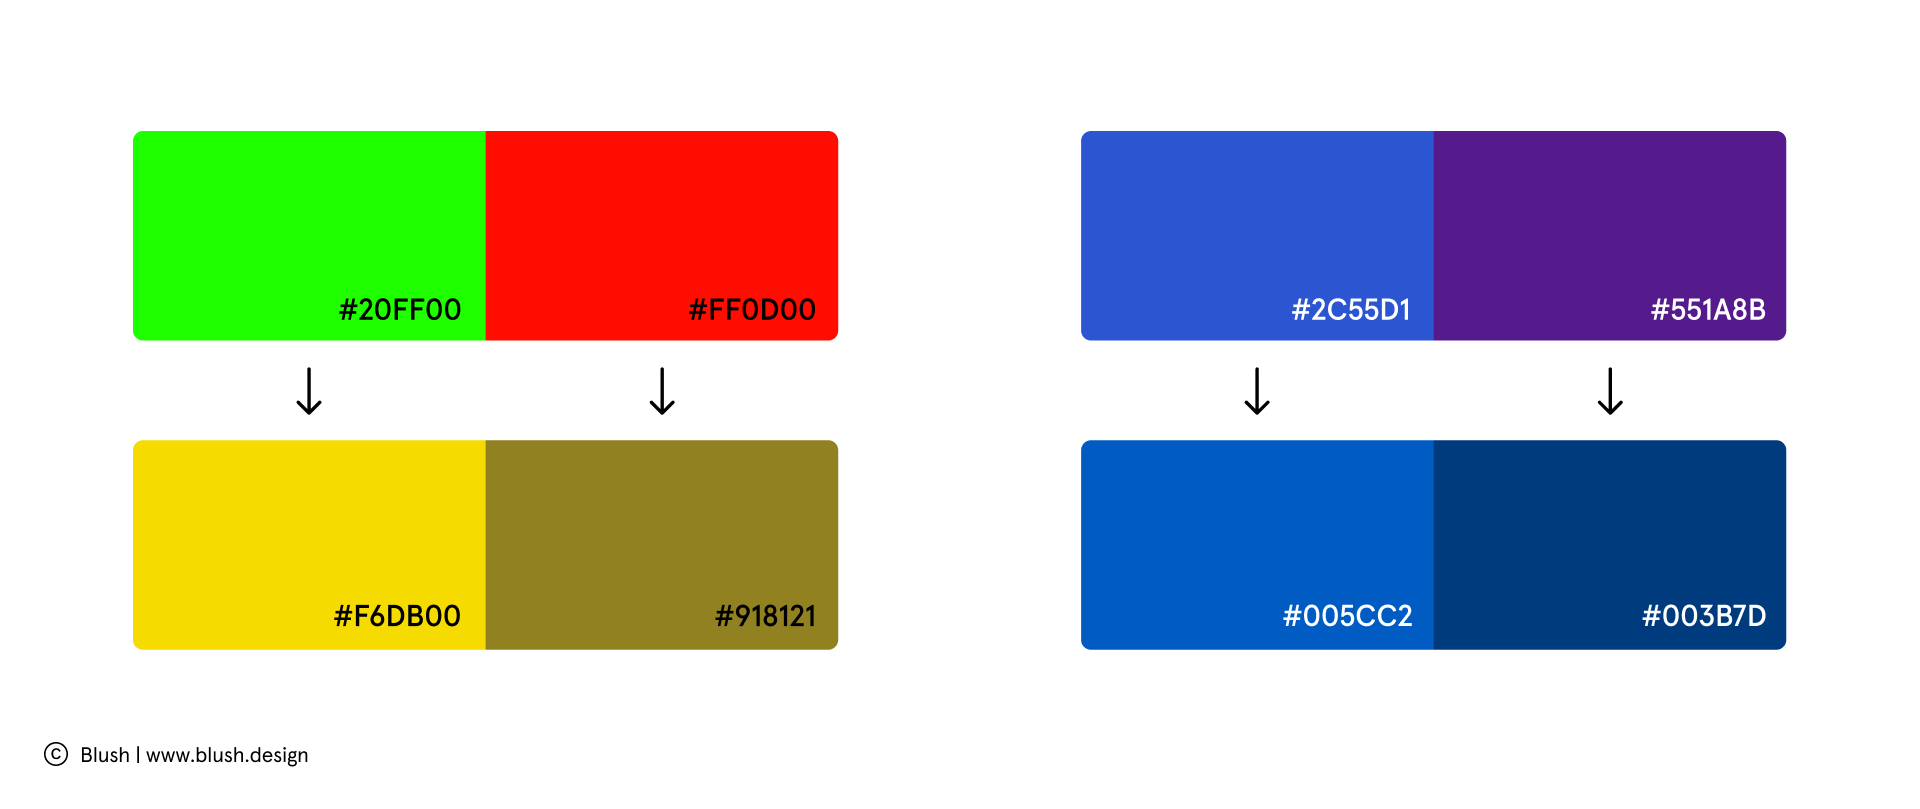 Pantone examples of what people without colorblindness see verse what people with colorblindness see.